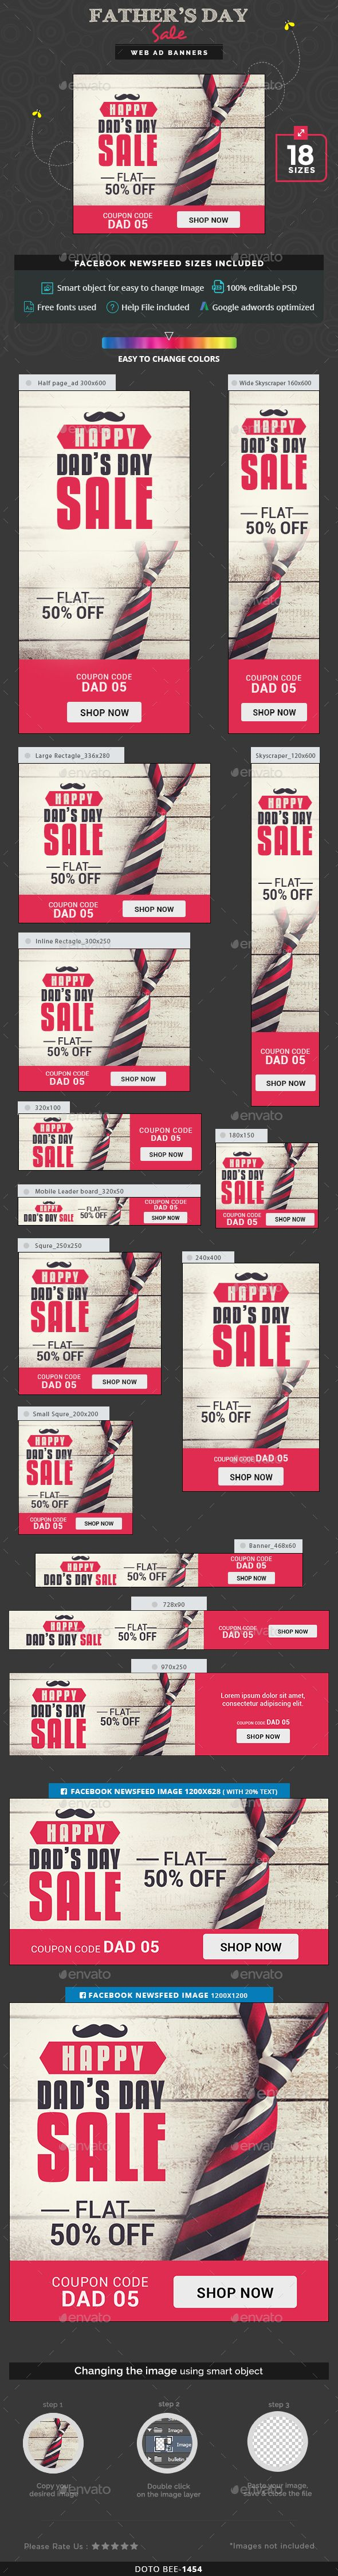 Fathers Day Sale Banners Template PSD. Download here: http://graphicriver.net/item/fathers-day-sale-banners/16516783?ref=ksioks